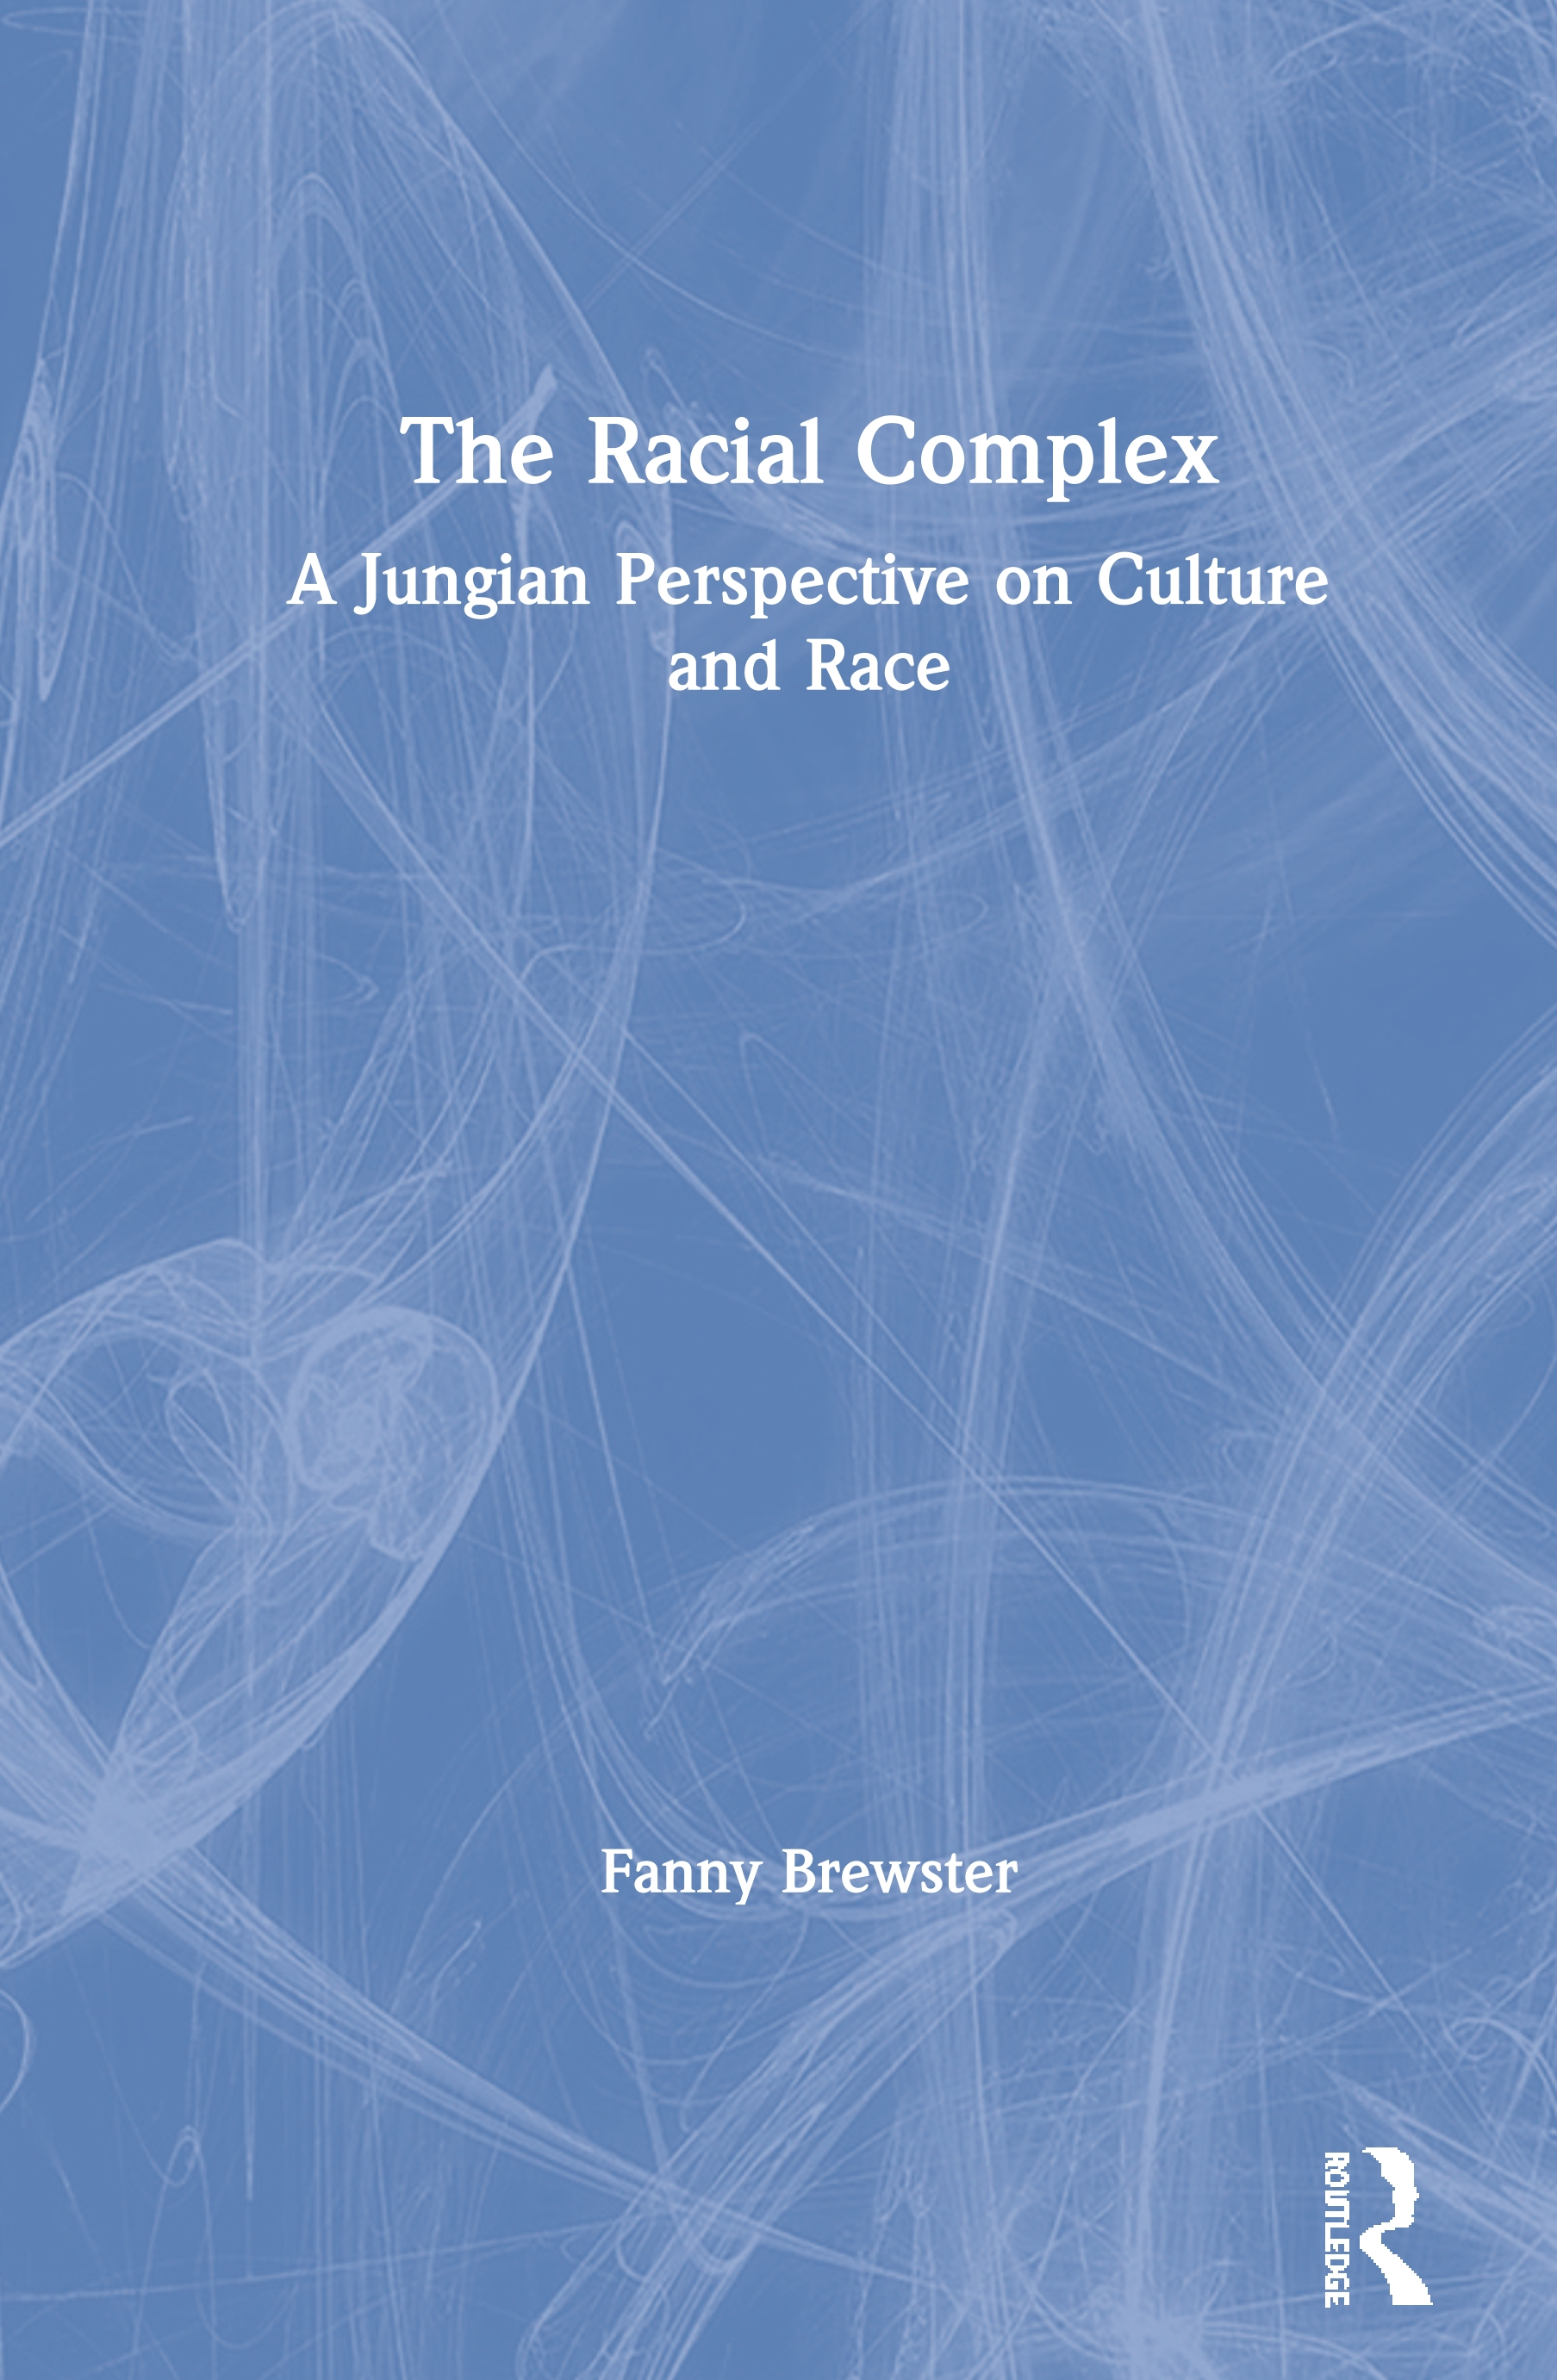 The Racial Complex: A Jungian Perspective on Culture and Race book cover